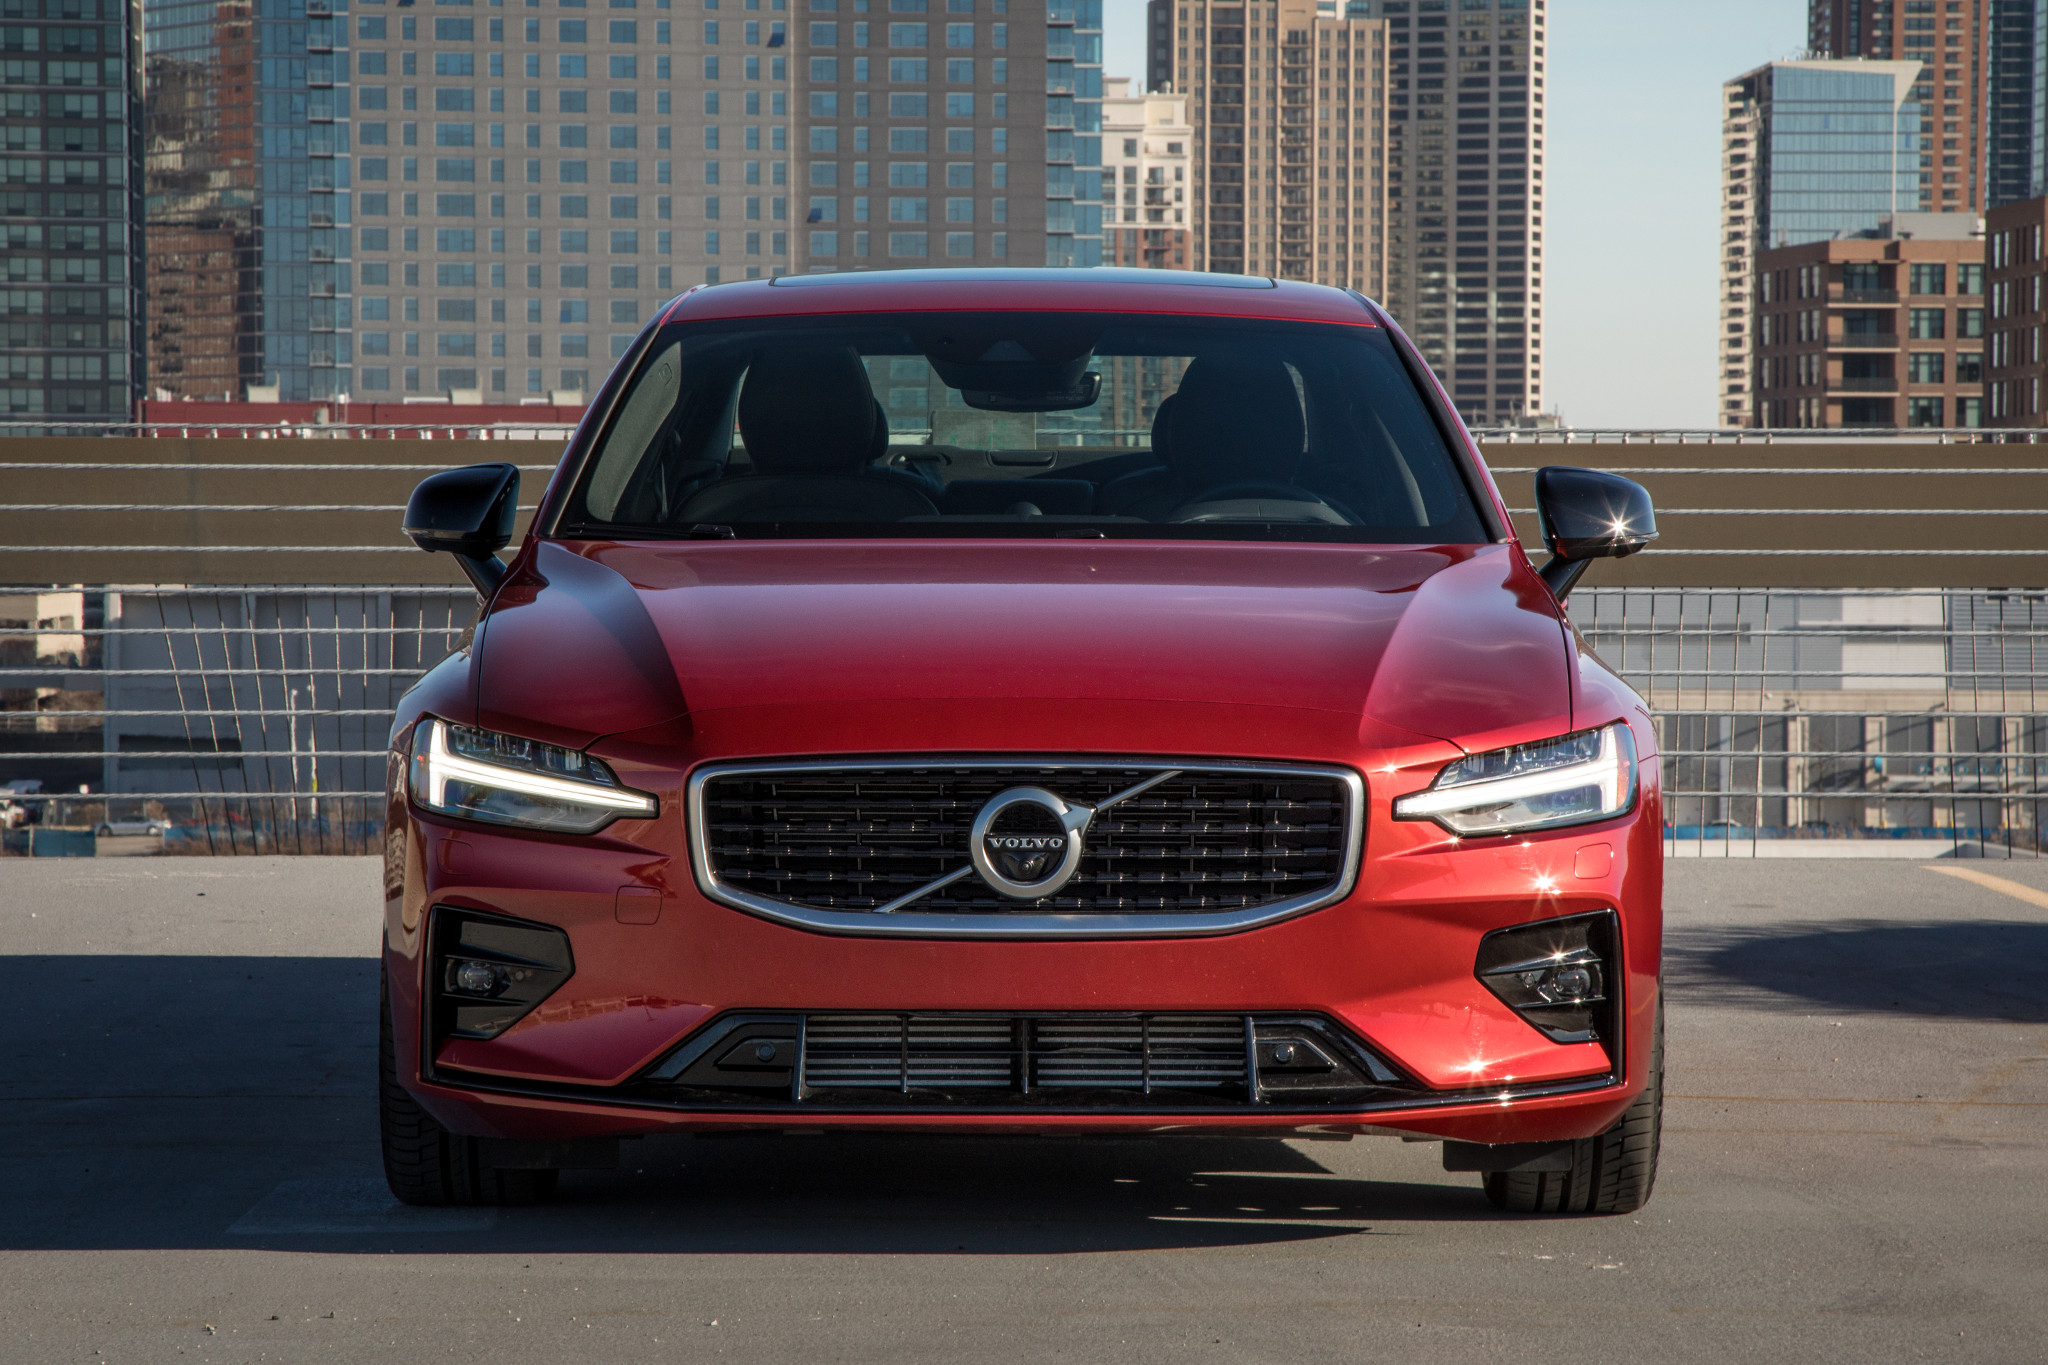 03-volvo-s60-2019-exterior--front--red--urban.jpg